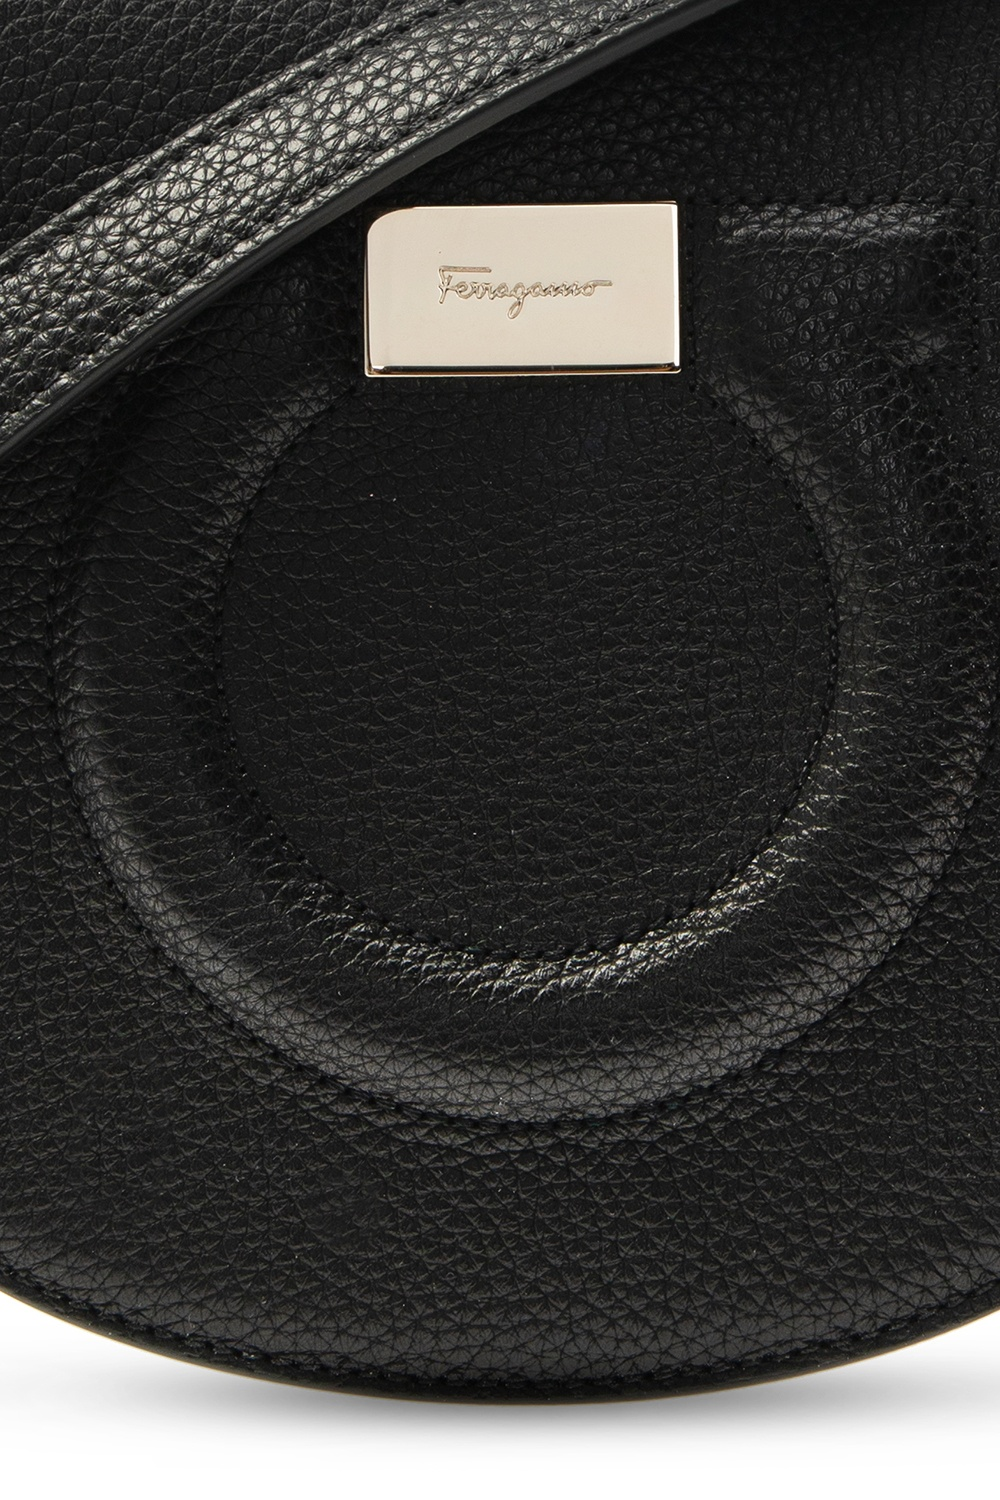 Salvatore Ferragamo 'City' shoulder bag